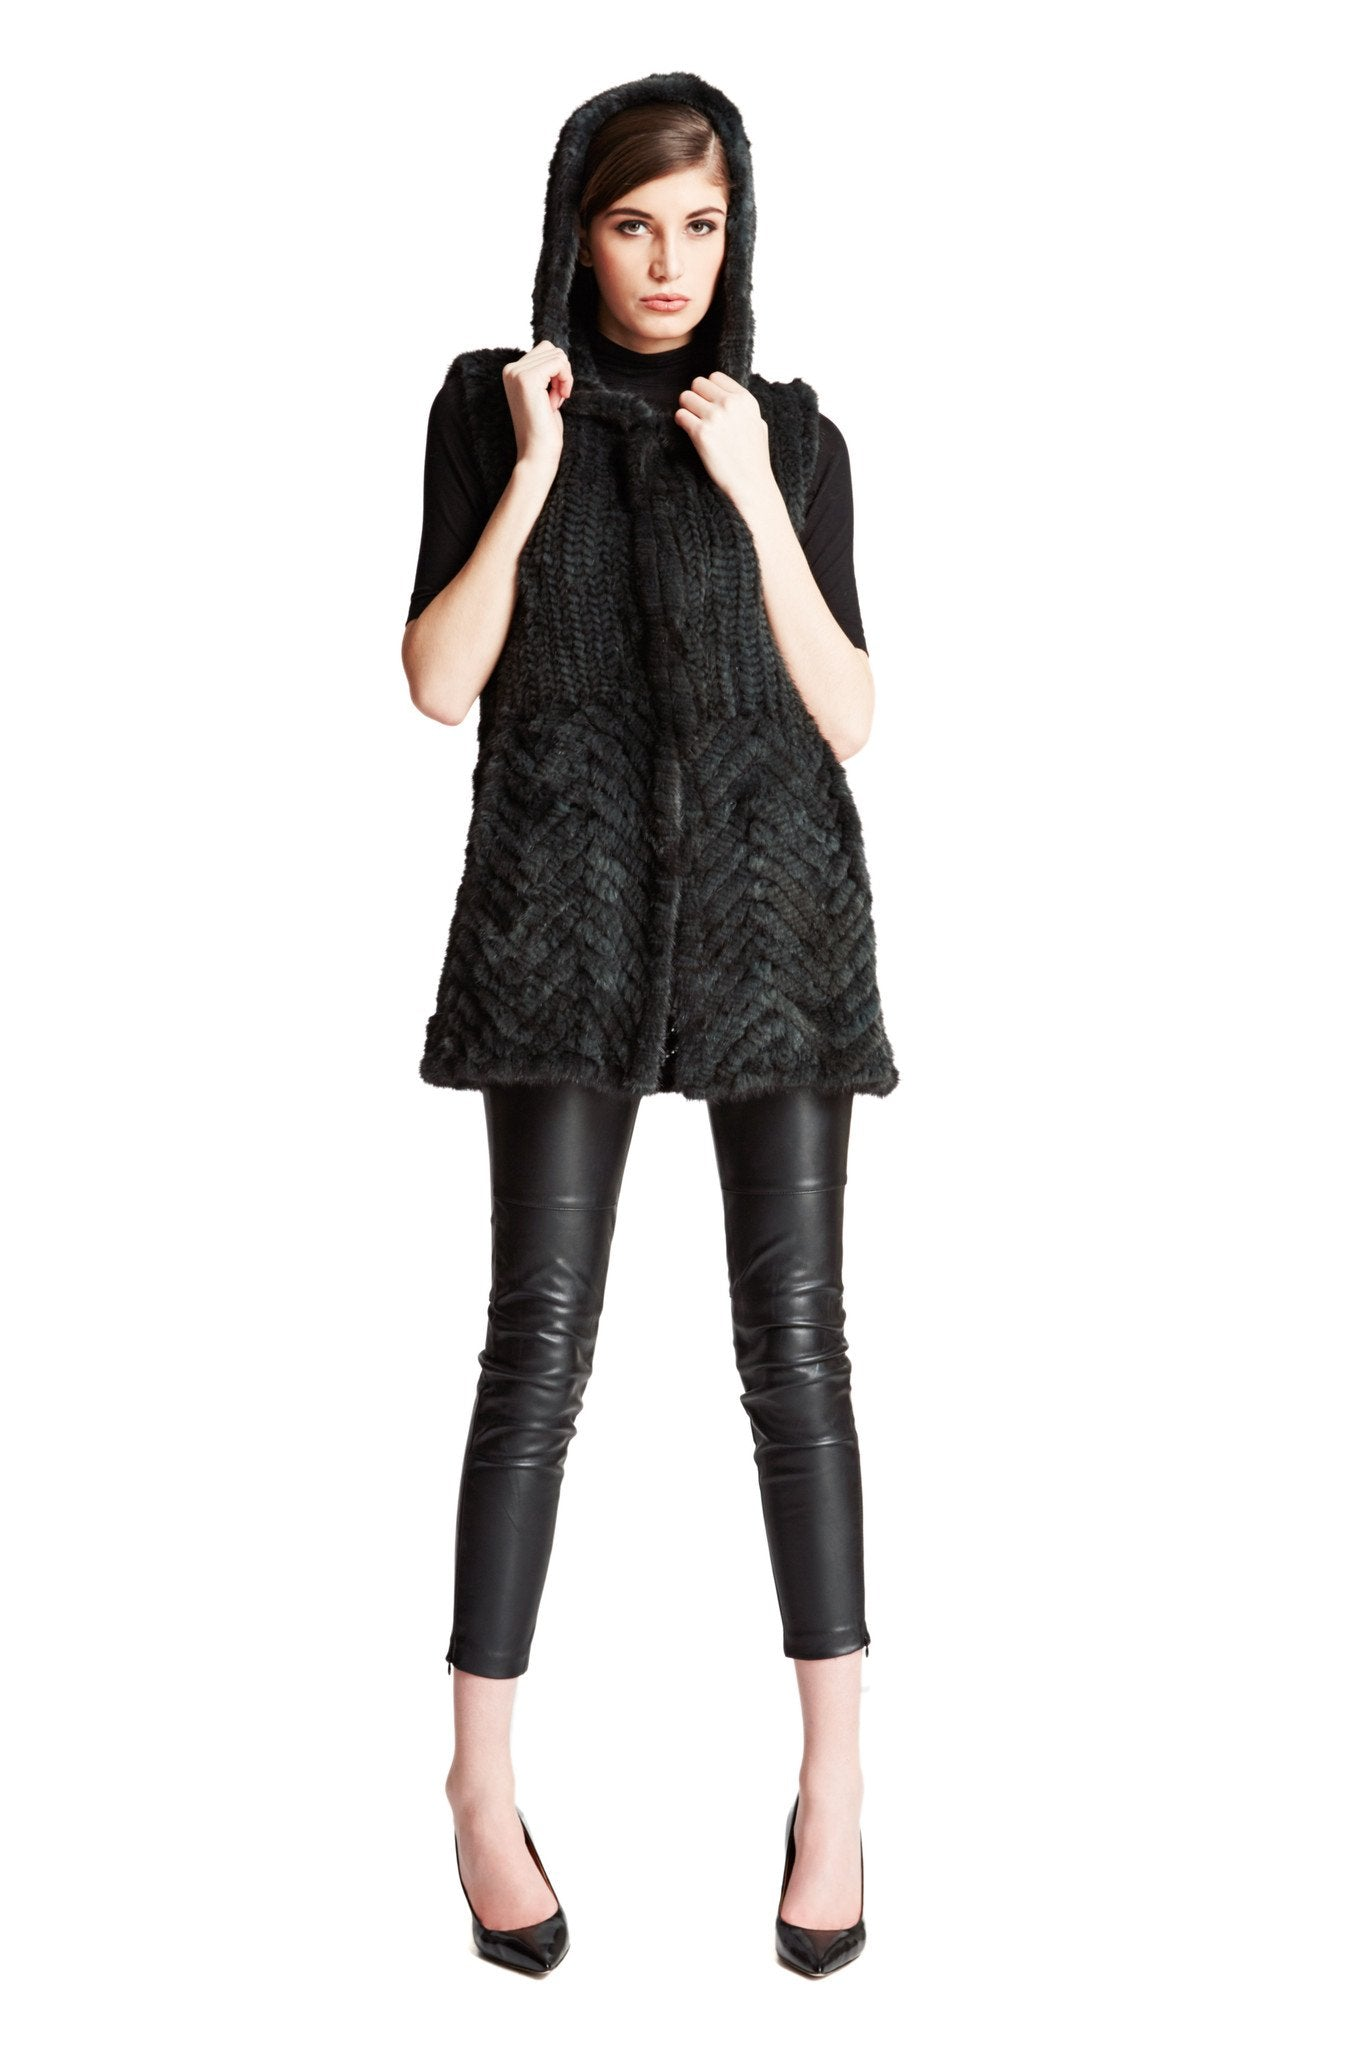 THE LOOE - Knitted Mink Fur Vest with Chevron Panel and Hood - paulamariecollection